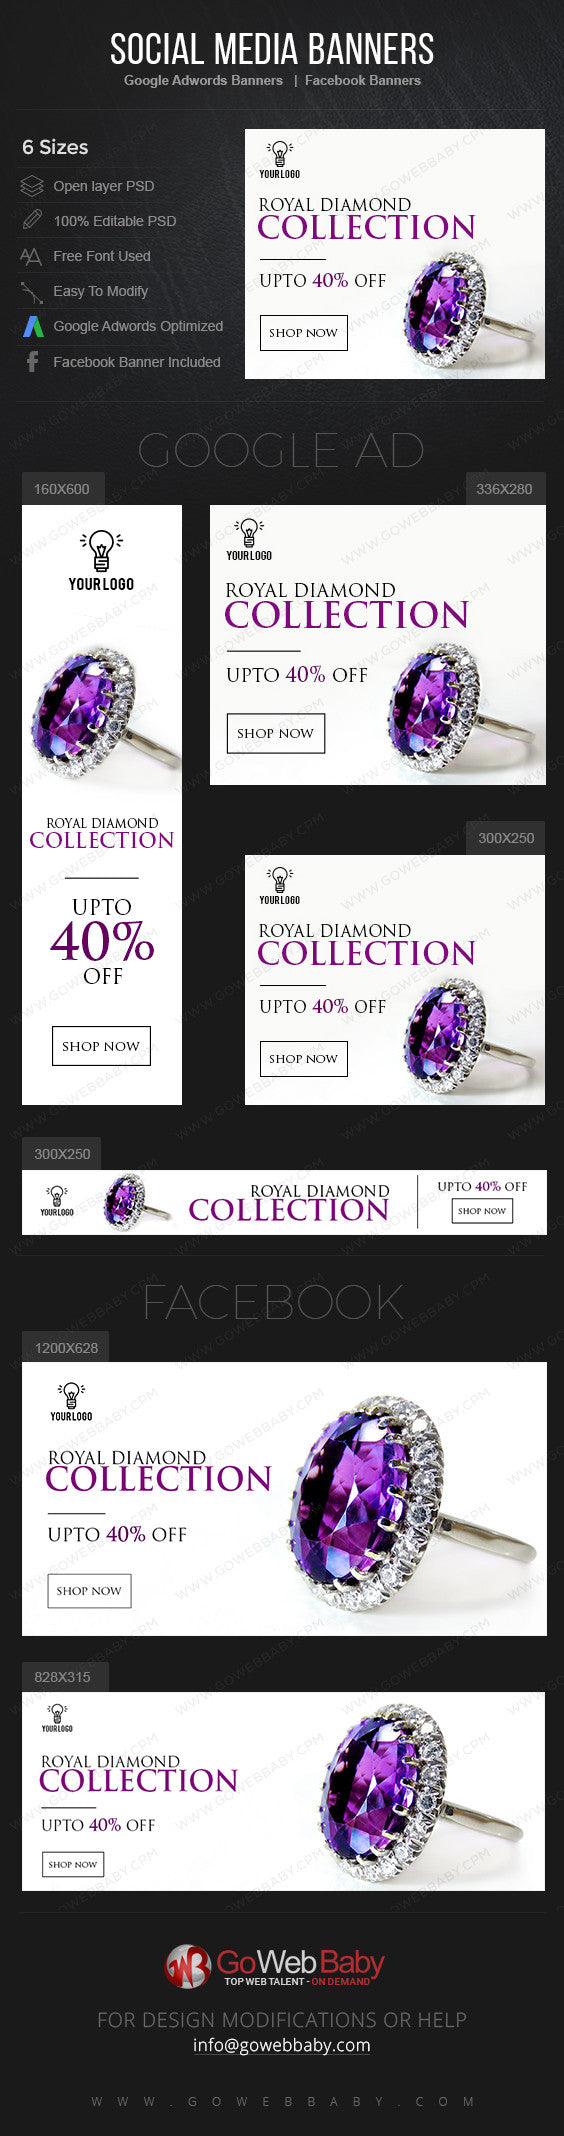 Google Adwords Display Banner with Facebook banners - Royal Diamond Store Website Marketing - GoWebBaby.Com